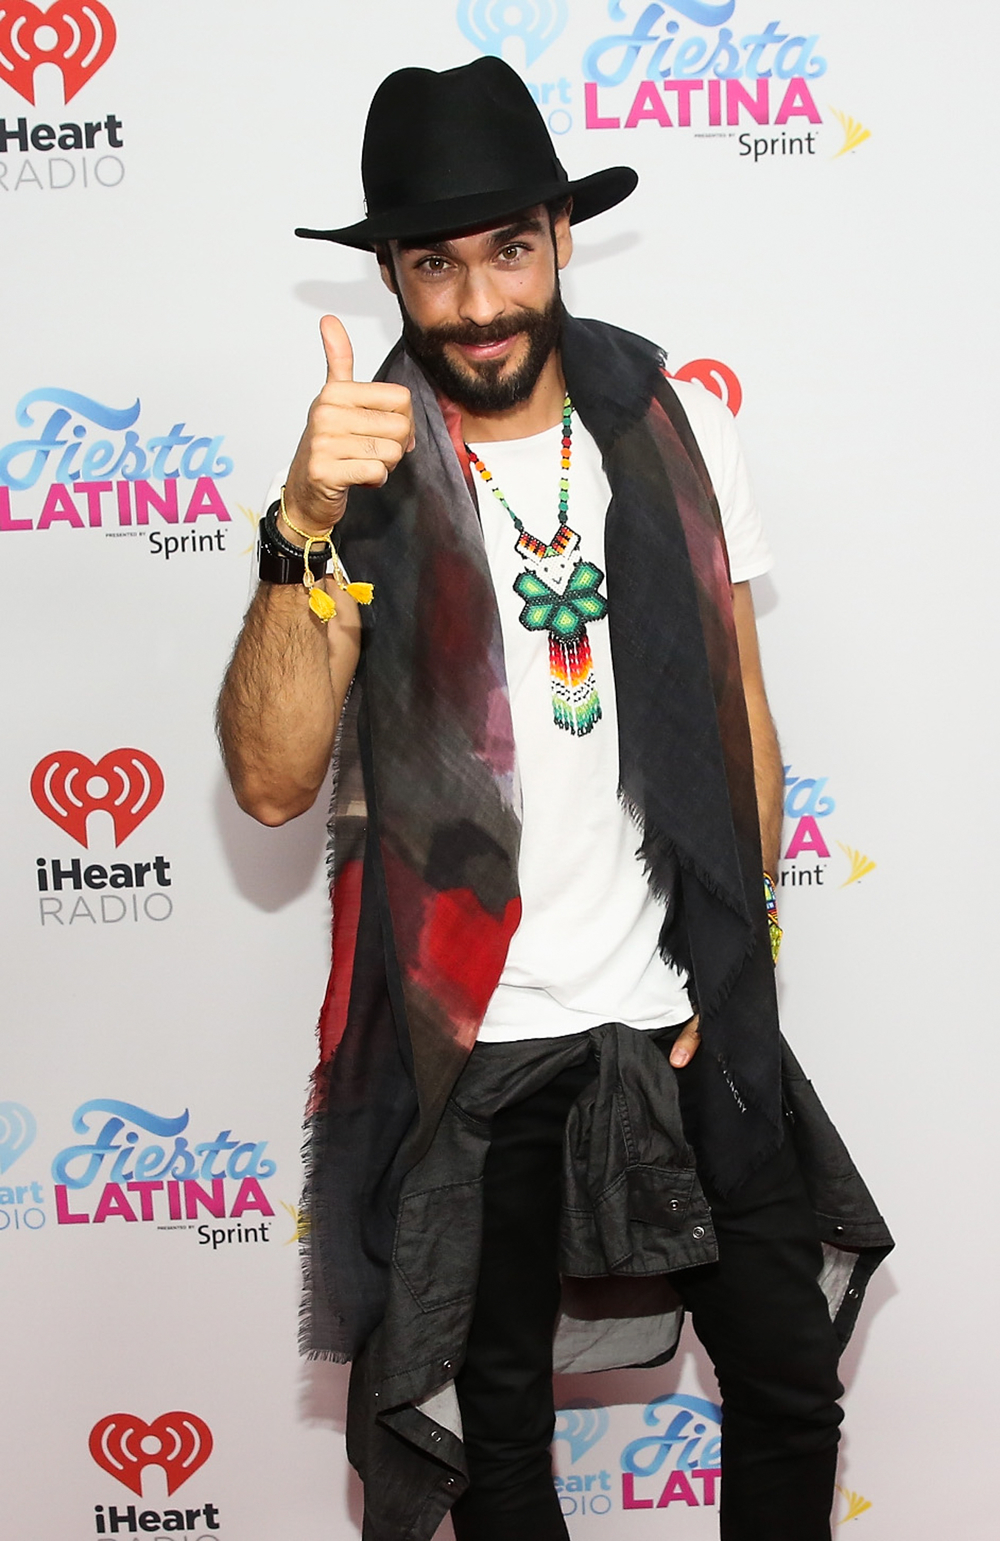 MIAMI, FL - NOVEMBER 07:  Gonzalo Garcia Vivanco attends iHeartRadio Fiesta Latina presented by Sprint at American Airlines Arena on November 7, 2015 in Miami, Florida.  (Photo by Aaron Davidson/Getty Images for iHeartMedia) *** Local Caption *** Gonzalo Garcia Vivanco